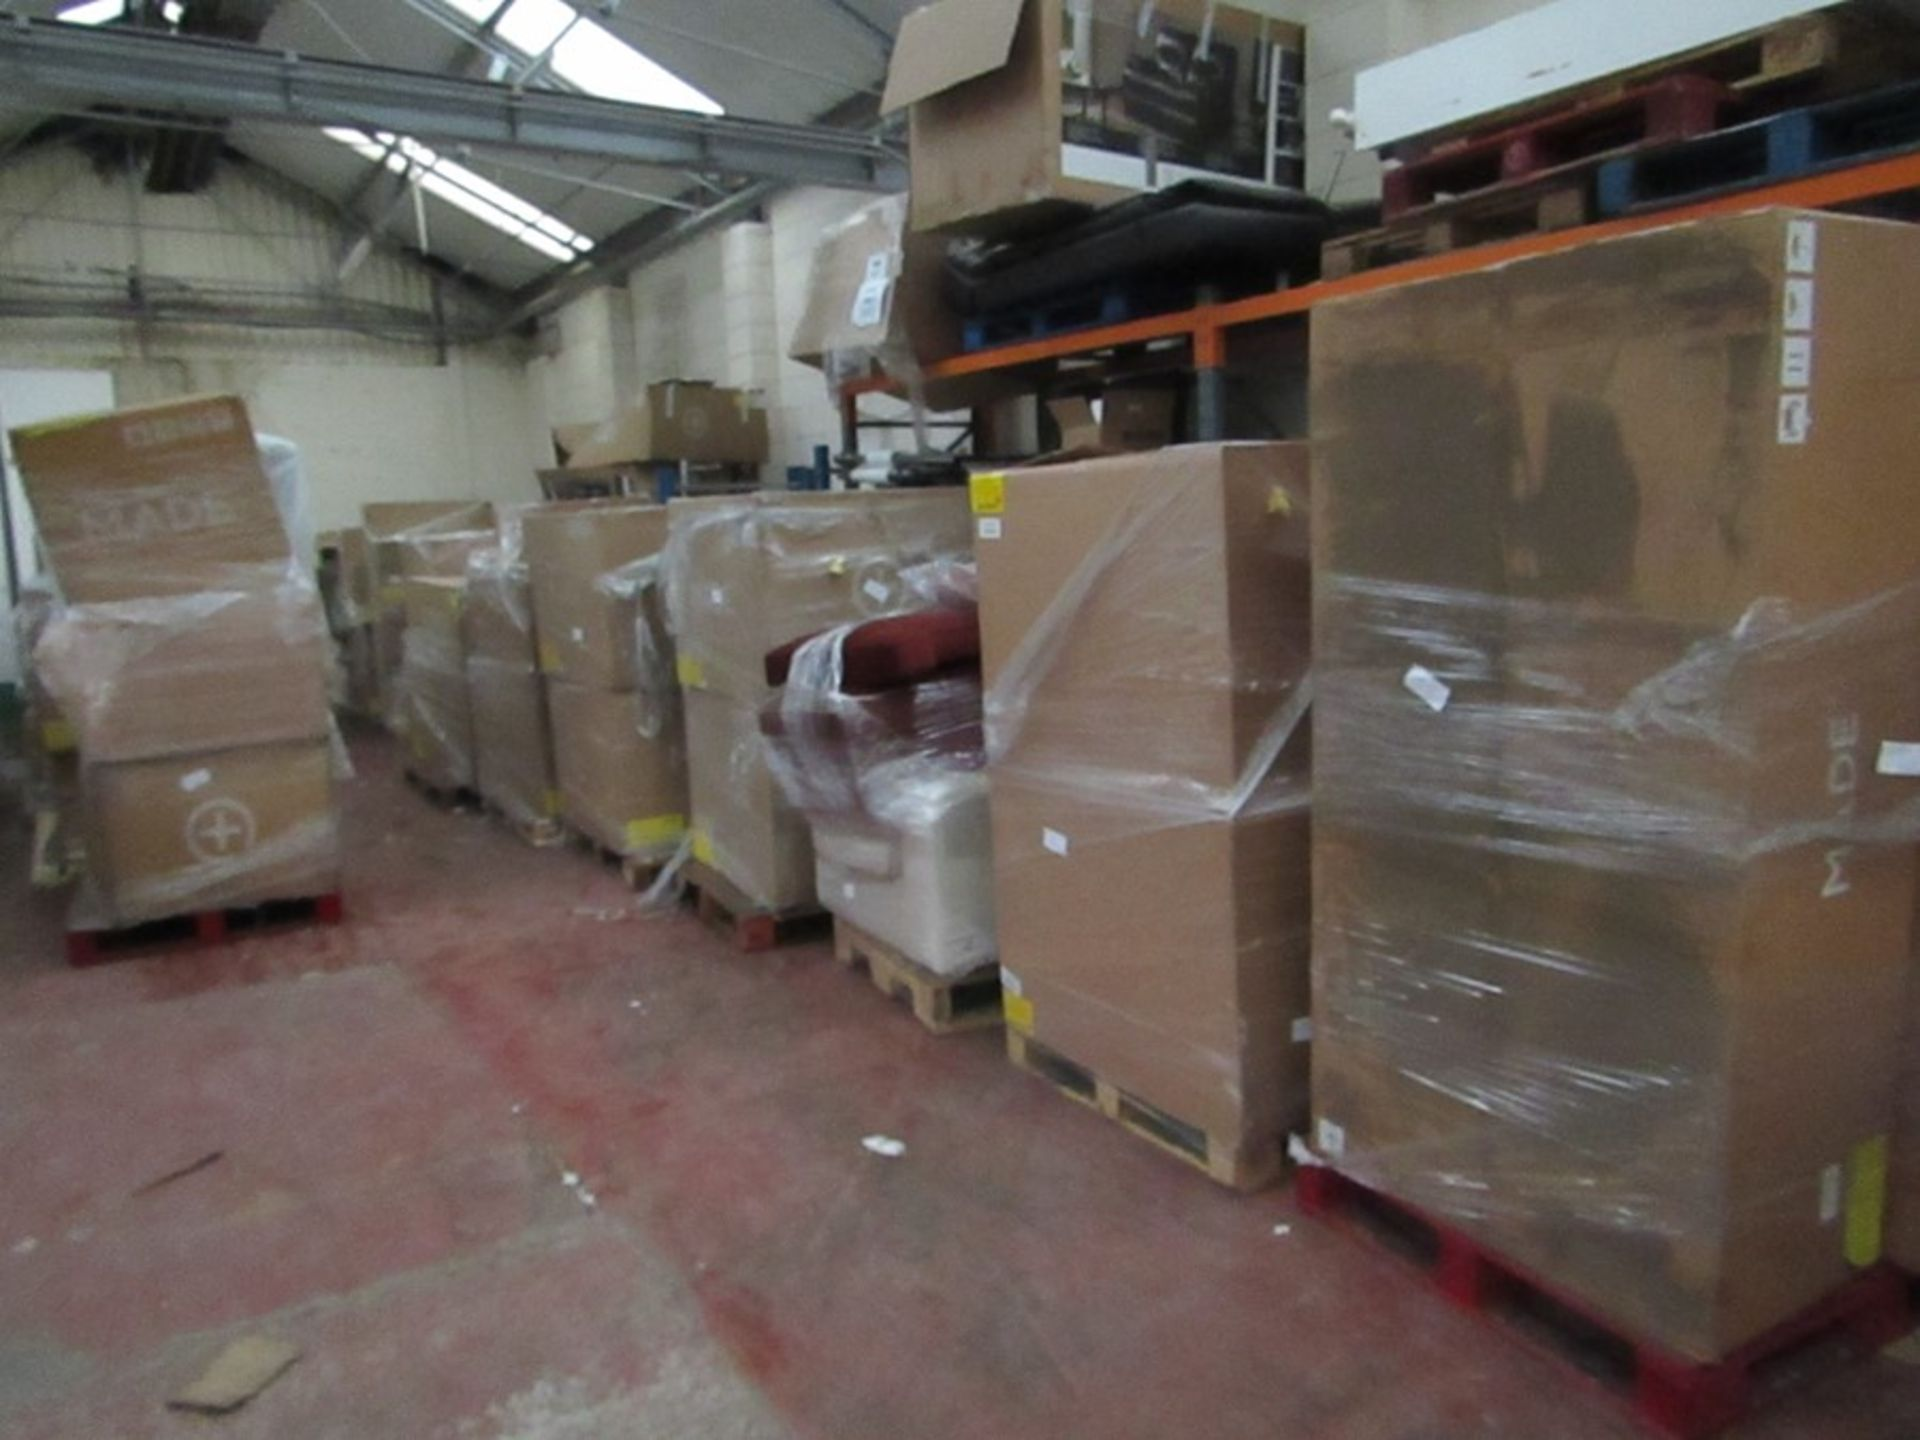   16x   PALLETS OF MADE.COM UNMANIFESTED SOFA PARTS, THESE ARE FROM VARIOUS SOFAS AND DONT APPEAR TO